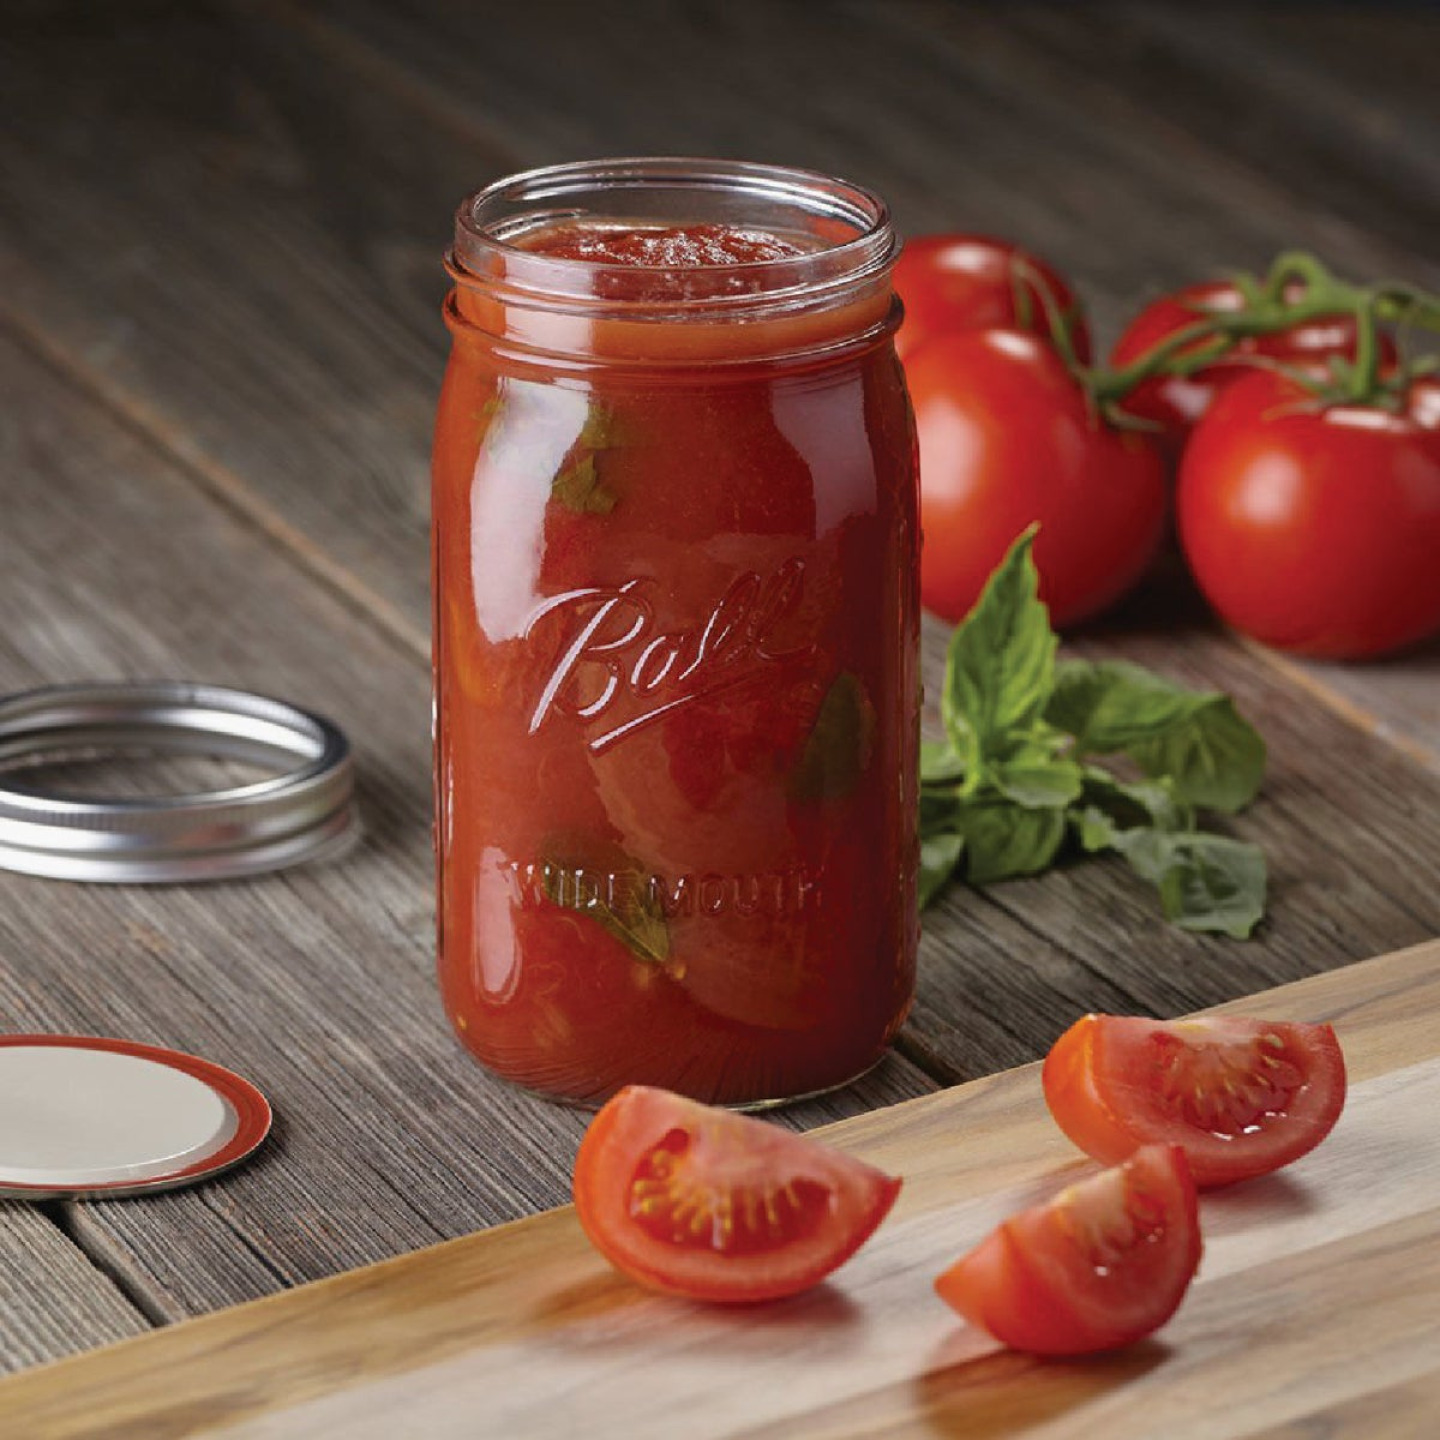 Ball 1 Quart Wide Mouth Mason Canning Jar (12-Count) Image 4